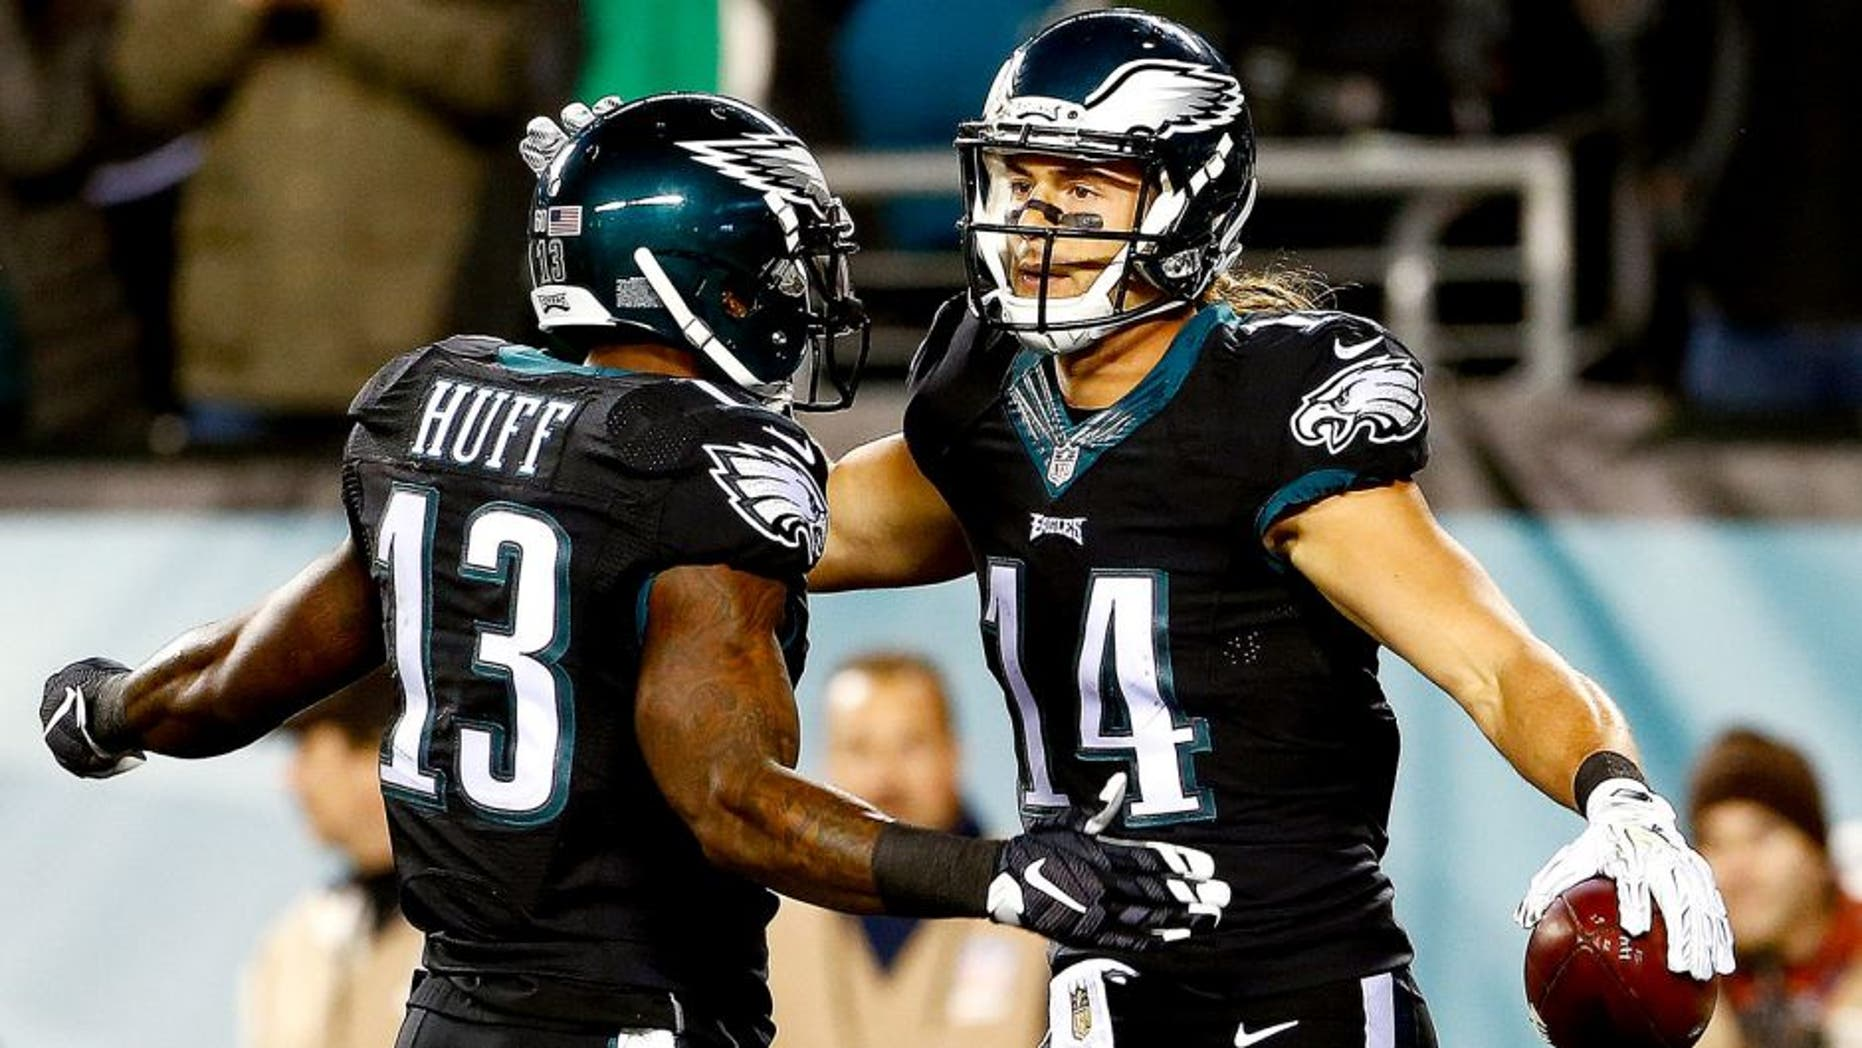 PHILADELPHIA, PA - OCTOBER 19: Riley Cooper #14 of the Philadelphia Eagles is congratulated by his teammate Josh Huff #13 after scoring a first quarter touchdown against the New York Giants at Lincoln Financial Field on October 19, 2015 in Philadelphia, Pennsylvania. (Photo by Rich Schultz/Getty Images)